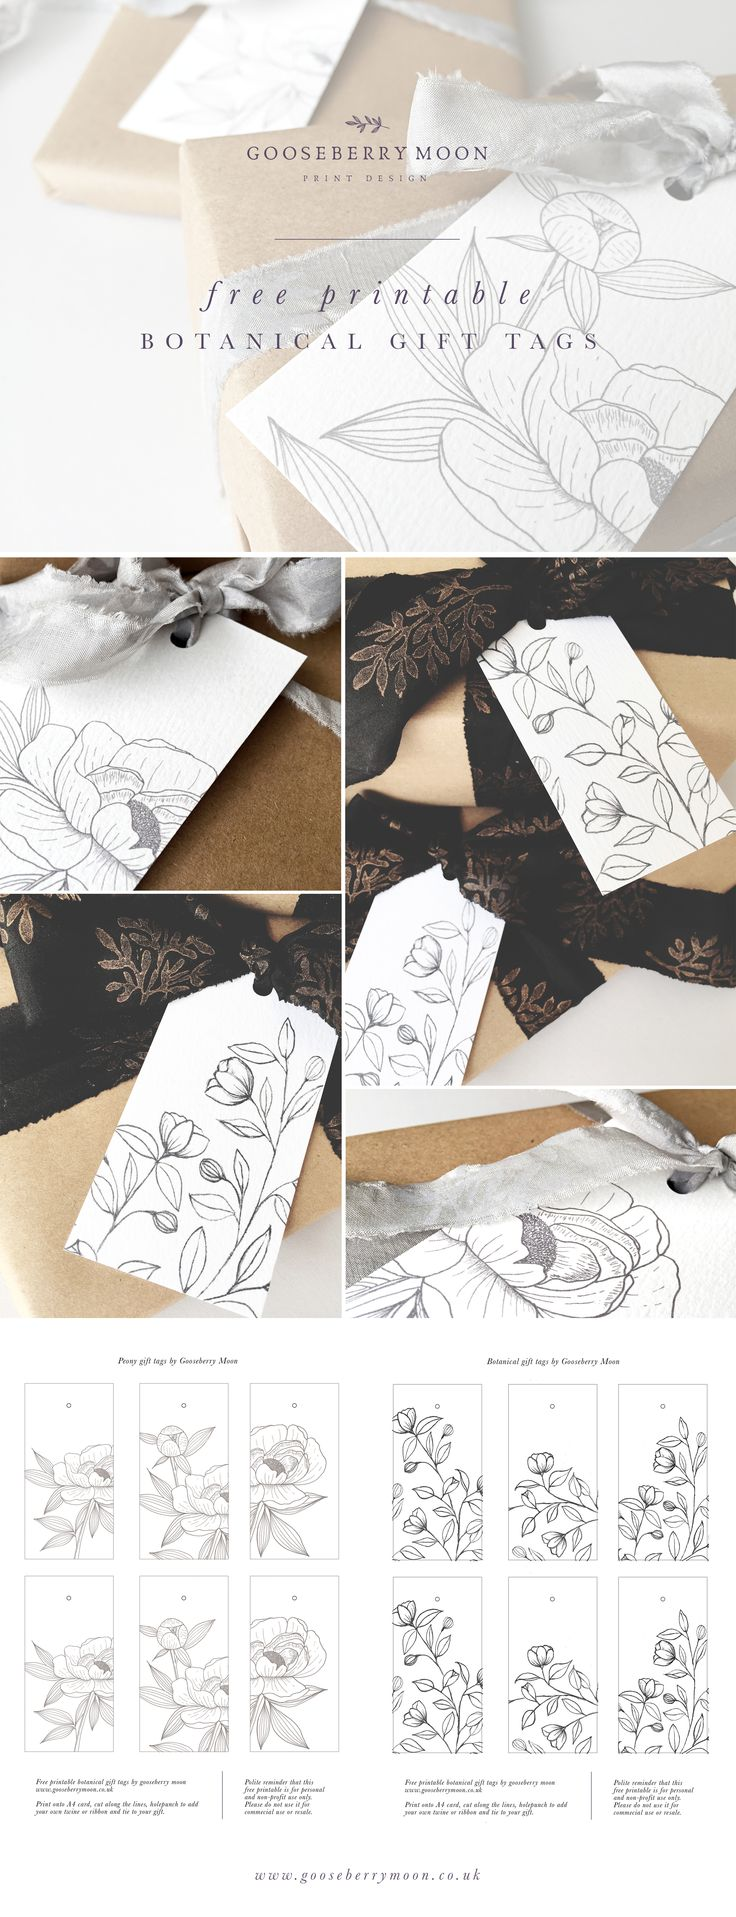 Free printable botanical gift tags by Gooseberry Moon